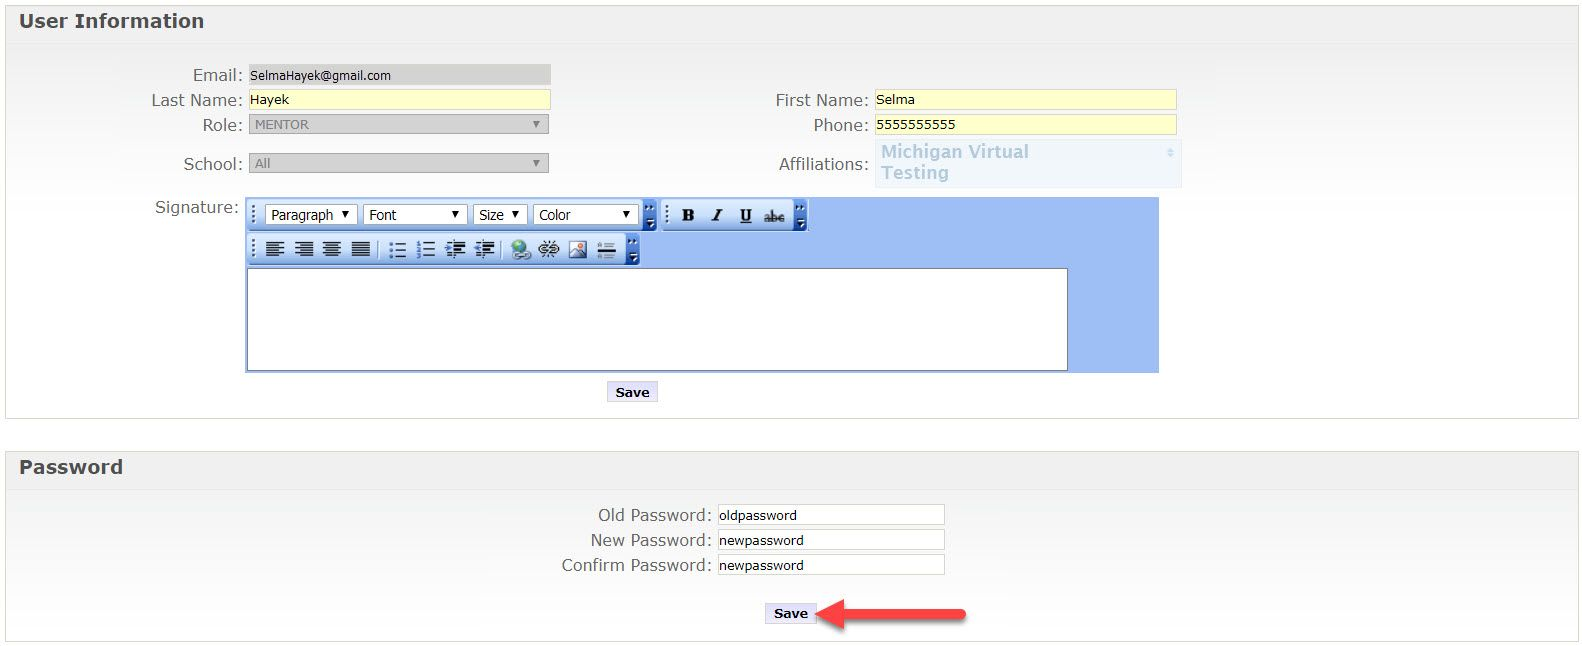 An arrow points to the Edit Account option on the left menu. The Edit Account page shows two sections, User Information and Password. The User Information section contains 5 fields that can be modified, Last Name, First Name, School, Affiliations, and Signature. Below the Signature is a Save button. The second section contains three open-text fields, old password, new password and confirm password. An arrow points to the Save button just below the fields.